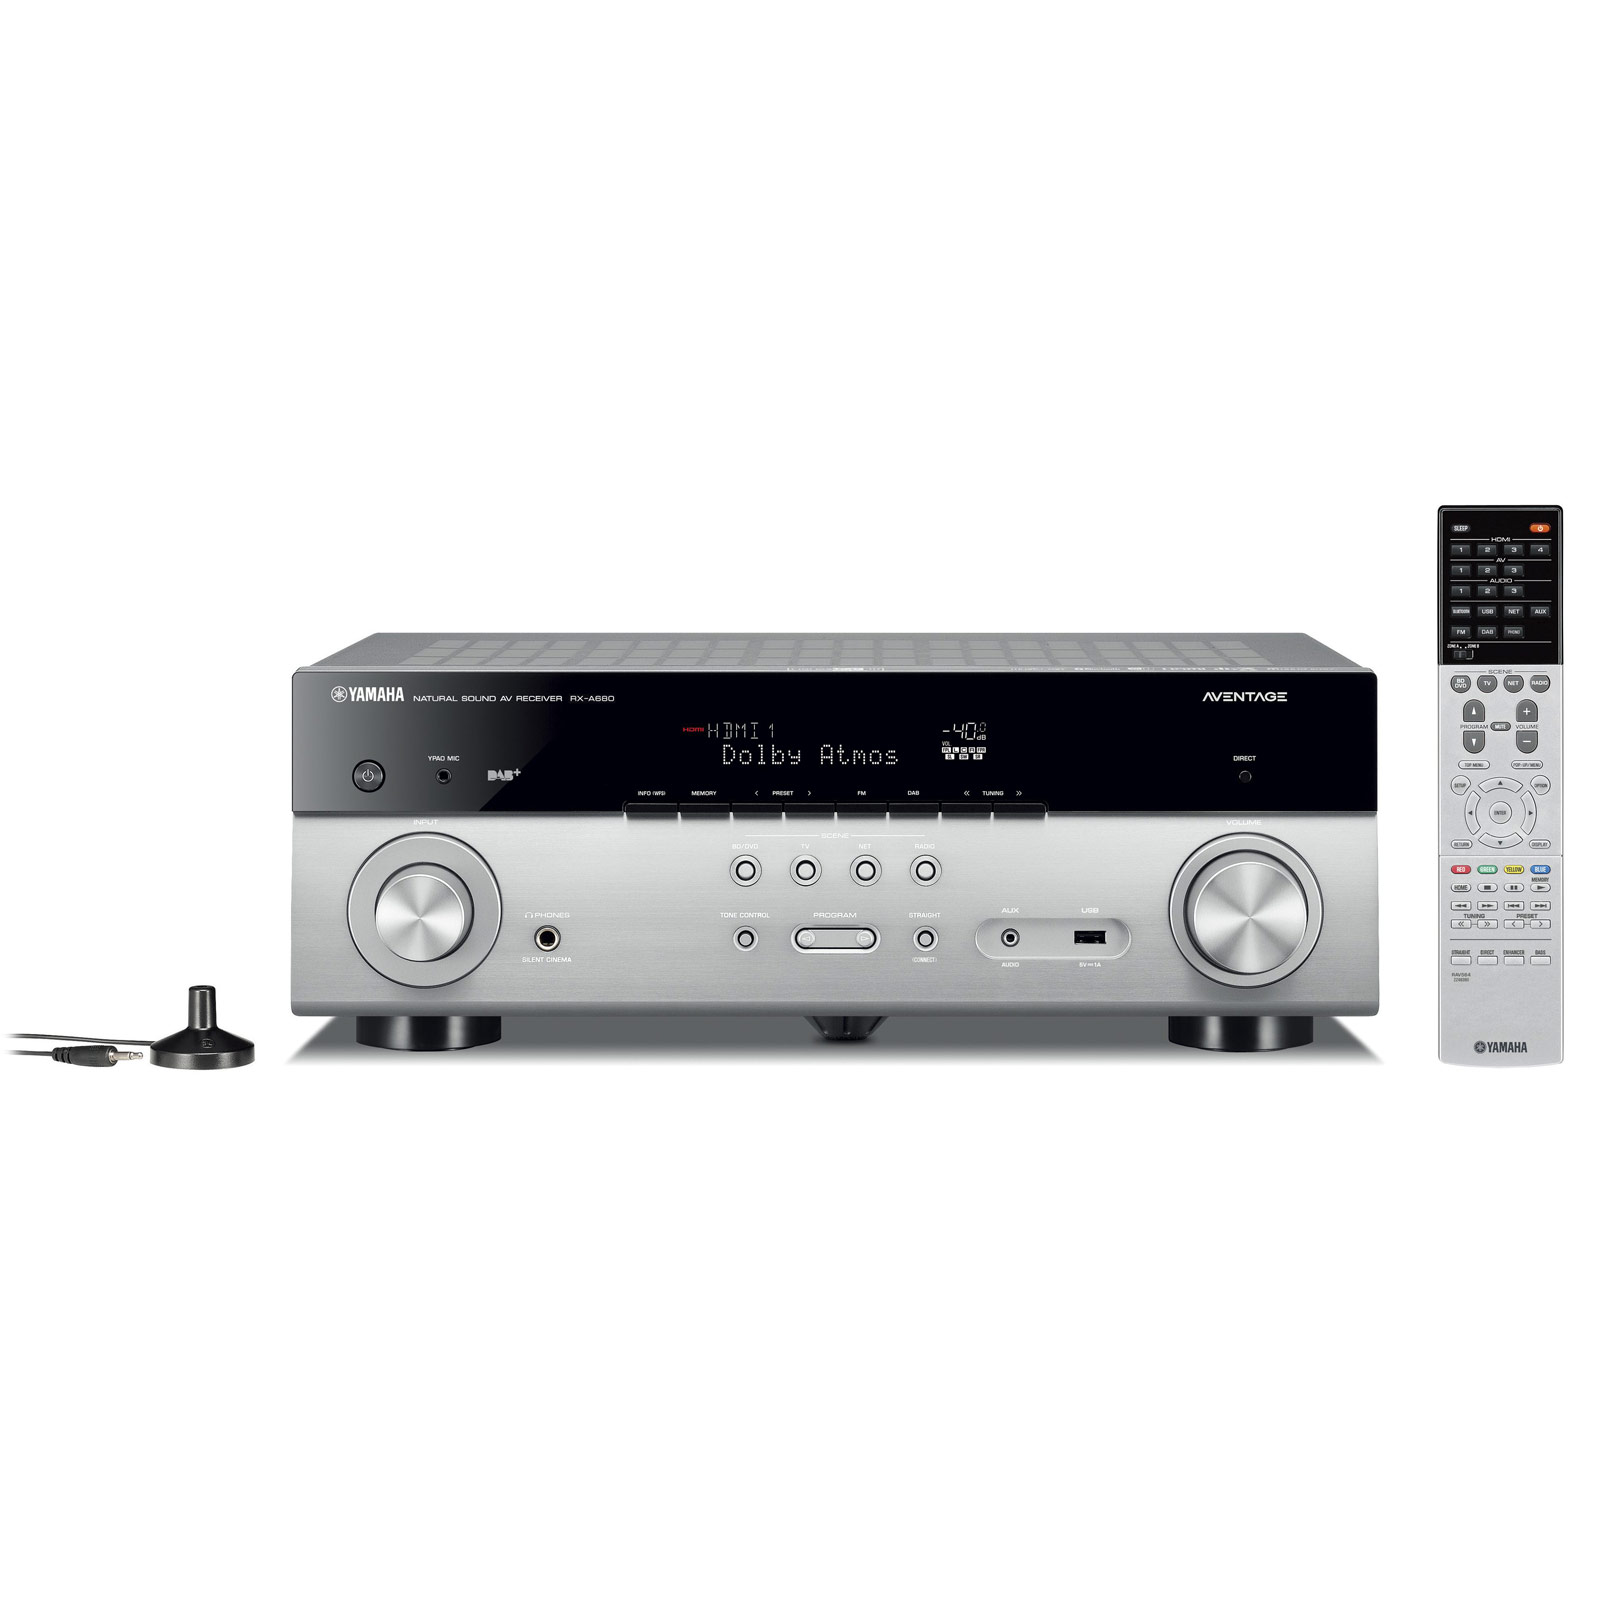 Ampli home cinéma Yamaha MusicCast RX-A680 Titane Ampli-tuner Home Cinéma 7.2 3D 80W/canal - Dolby Atmos/DTS:X - 4x HDMI HDCP 2.2 Ultra HD 4K - Wi-Fi/Bluetooth/DLNA/AirPlay - MusicCast/MusicCast Surround - A.R.T. Wedge - Calibration YPAO